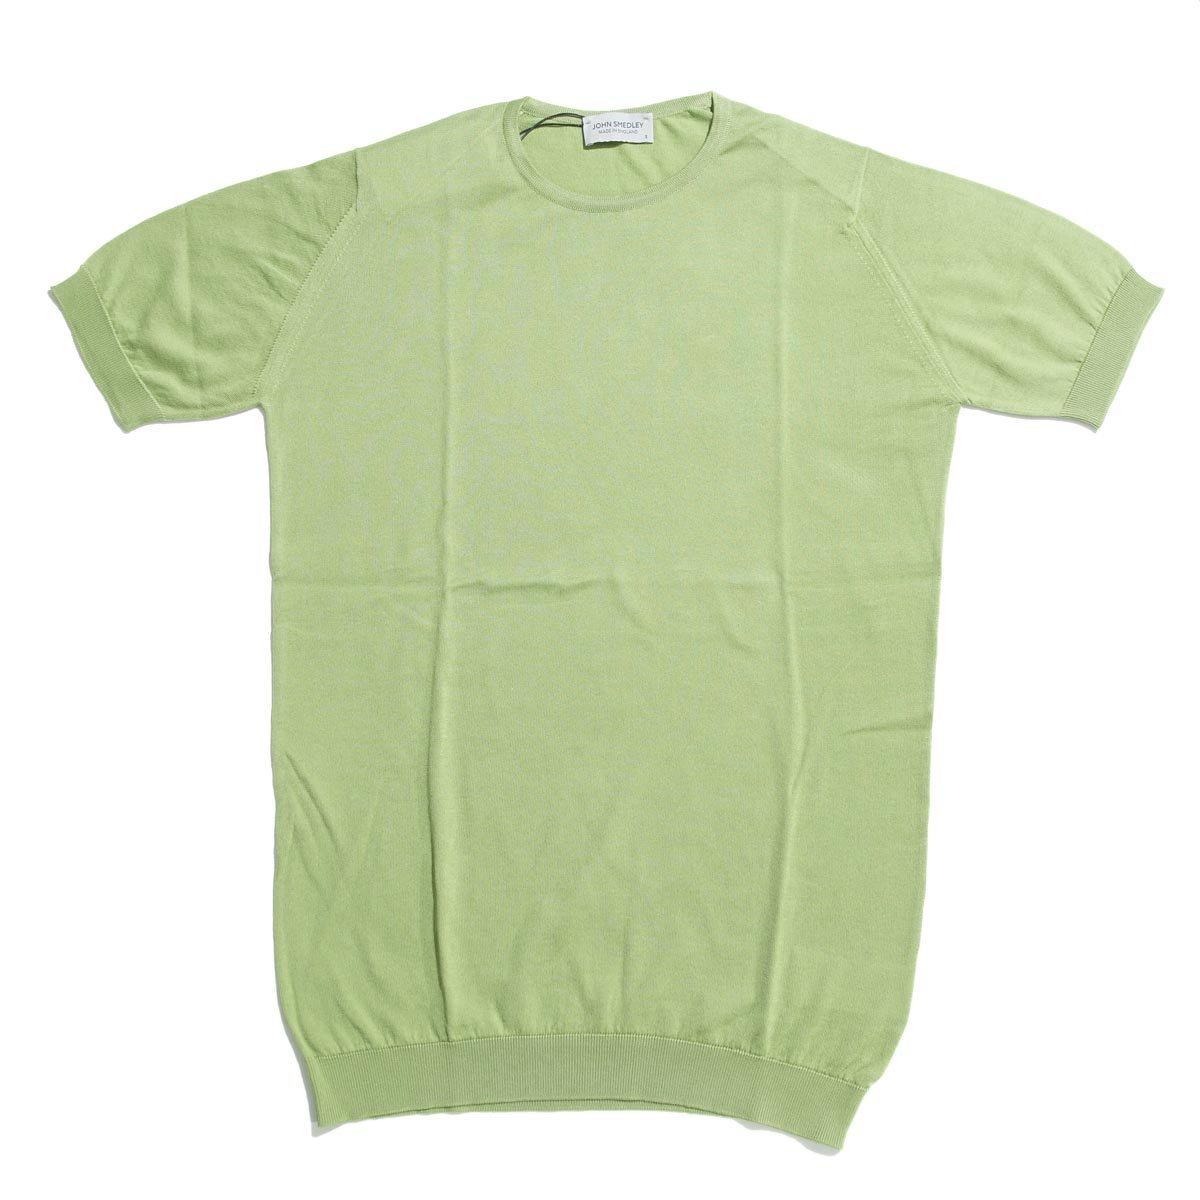 【Patagonia Lightweight A/C Short Sleeve Button-Down Shirt】 ジャケット シャツ Taupe パタゴニア メンズ